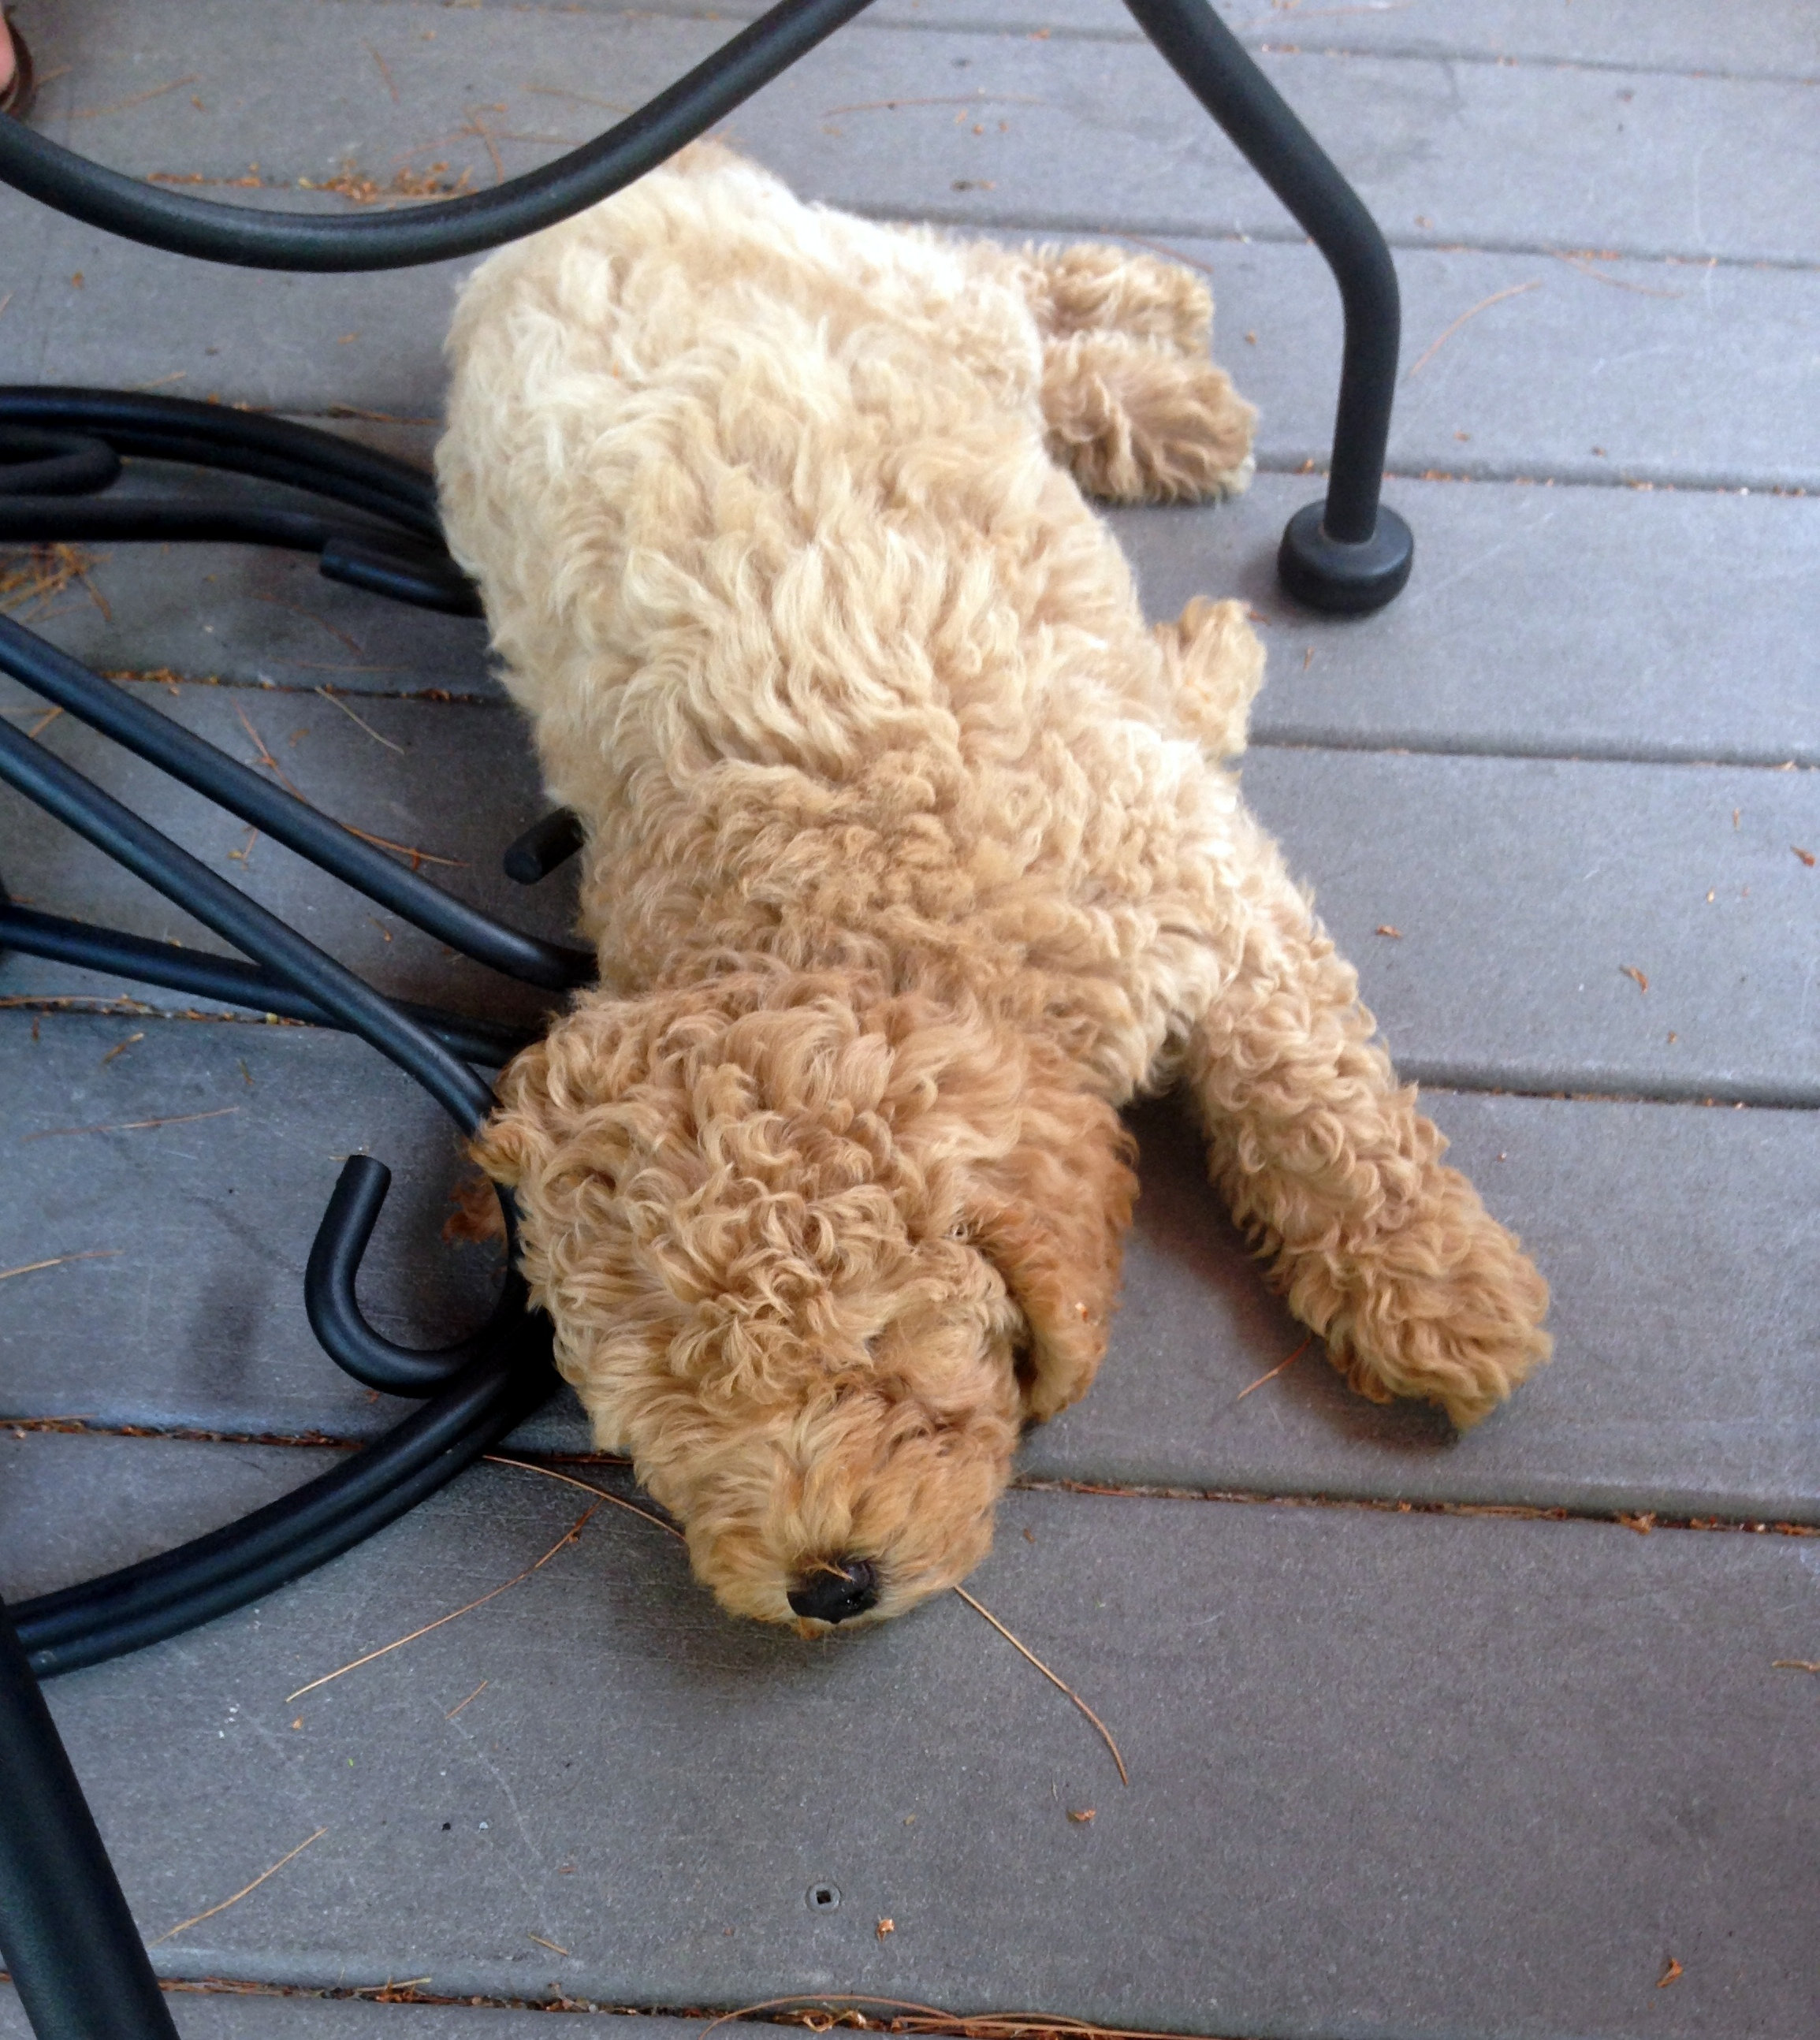 Sharing How When Where I Got My Mini Goldendoodle You Bet Your